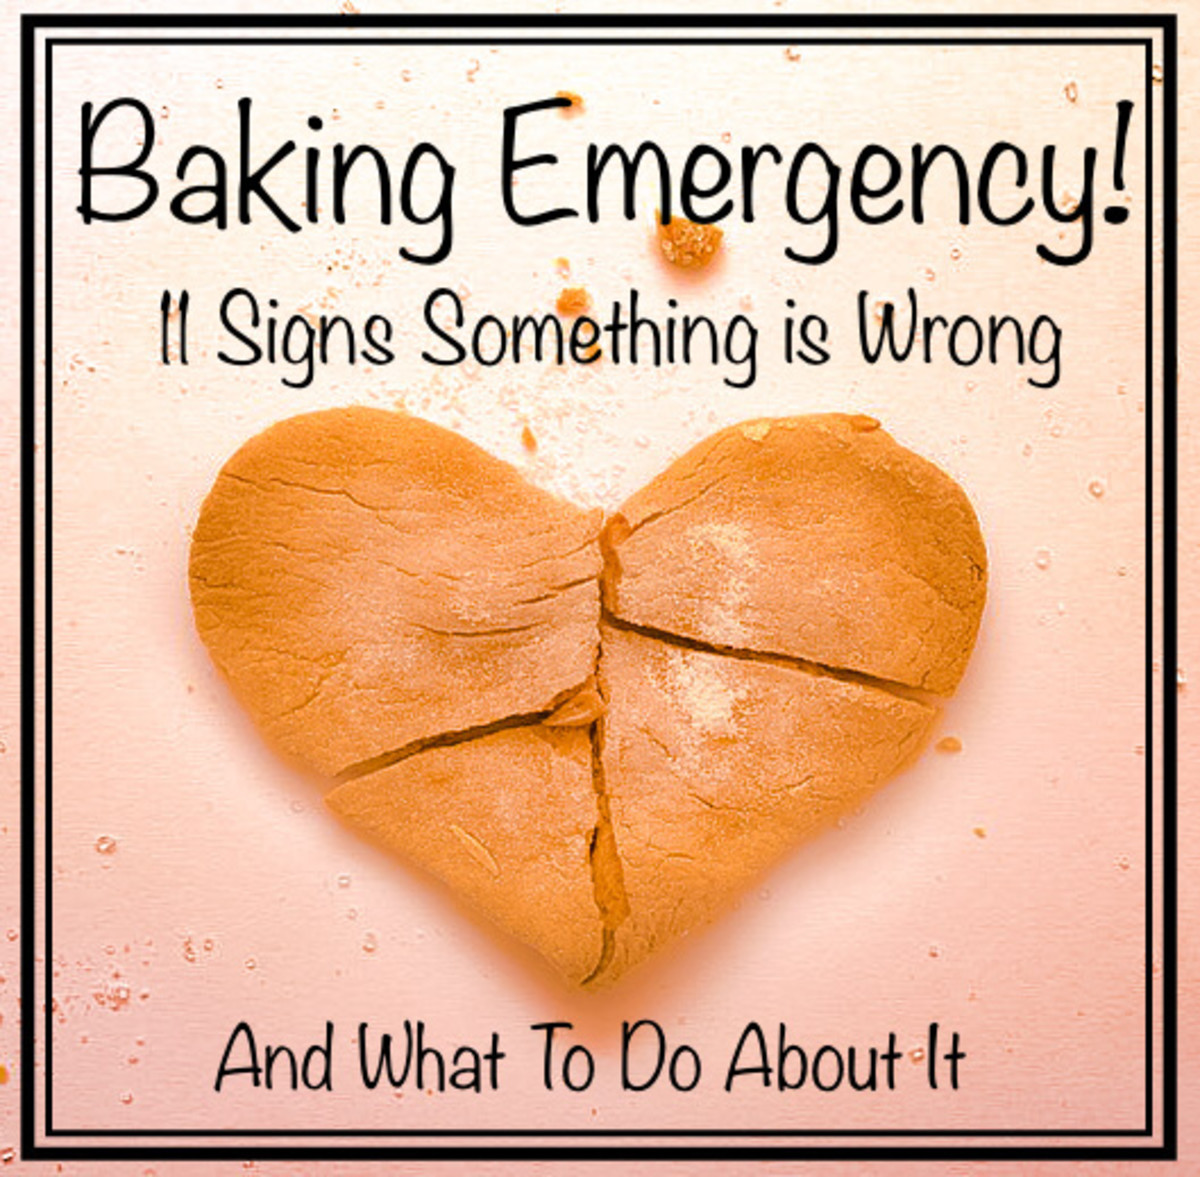 Baking disasters explained.